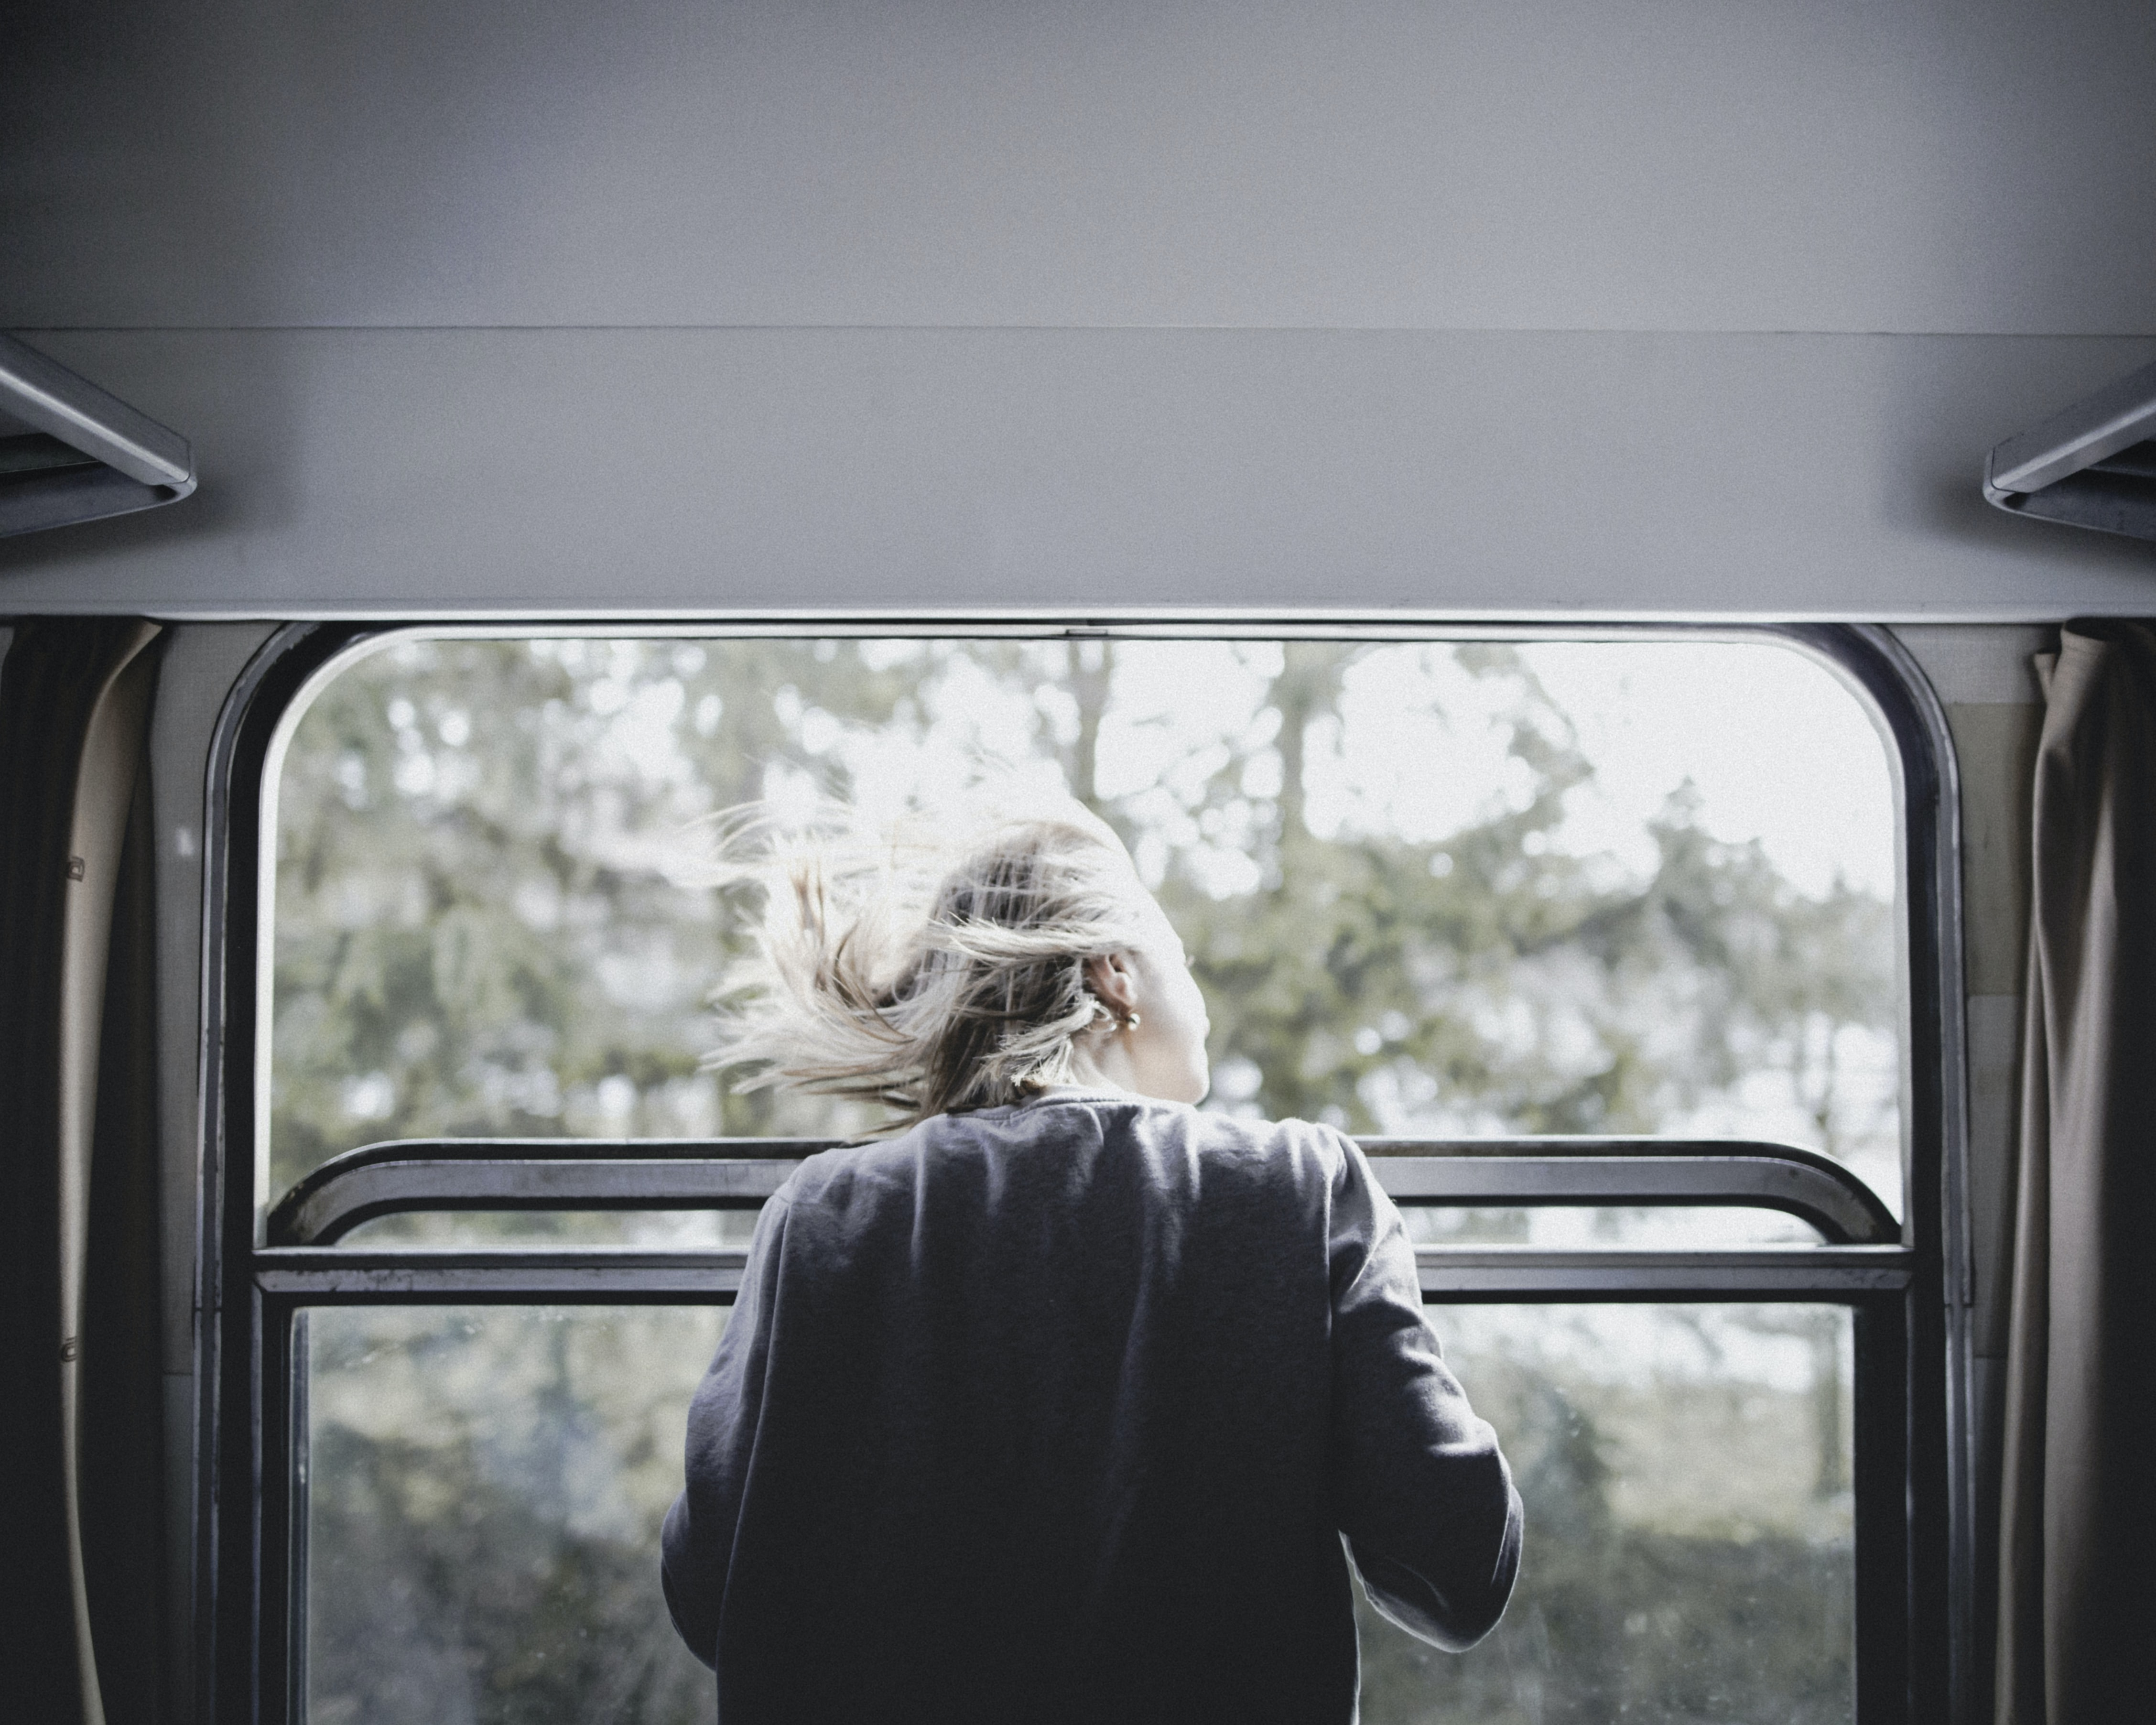 woman wearing black jacket leaning on train window looking at something